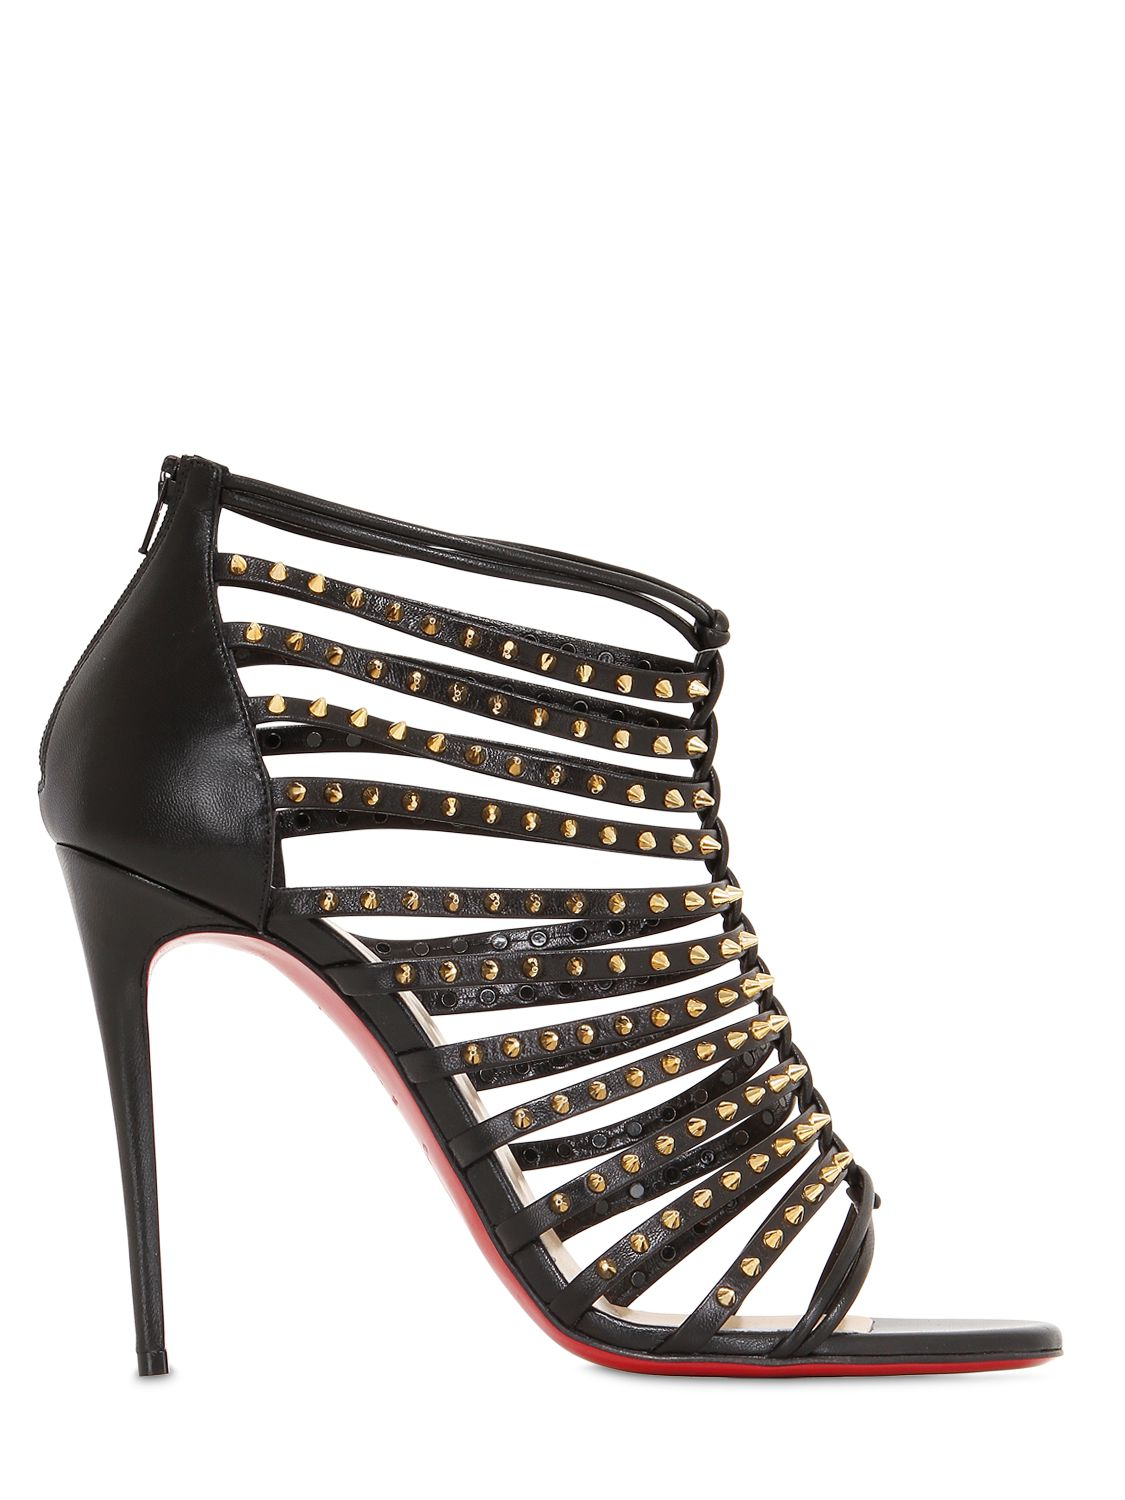 louboutin shoes - Christian louboutin Millaclou Studded Leather Cage Sandals in ...